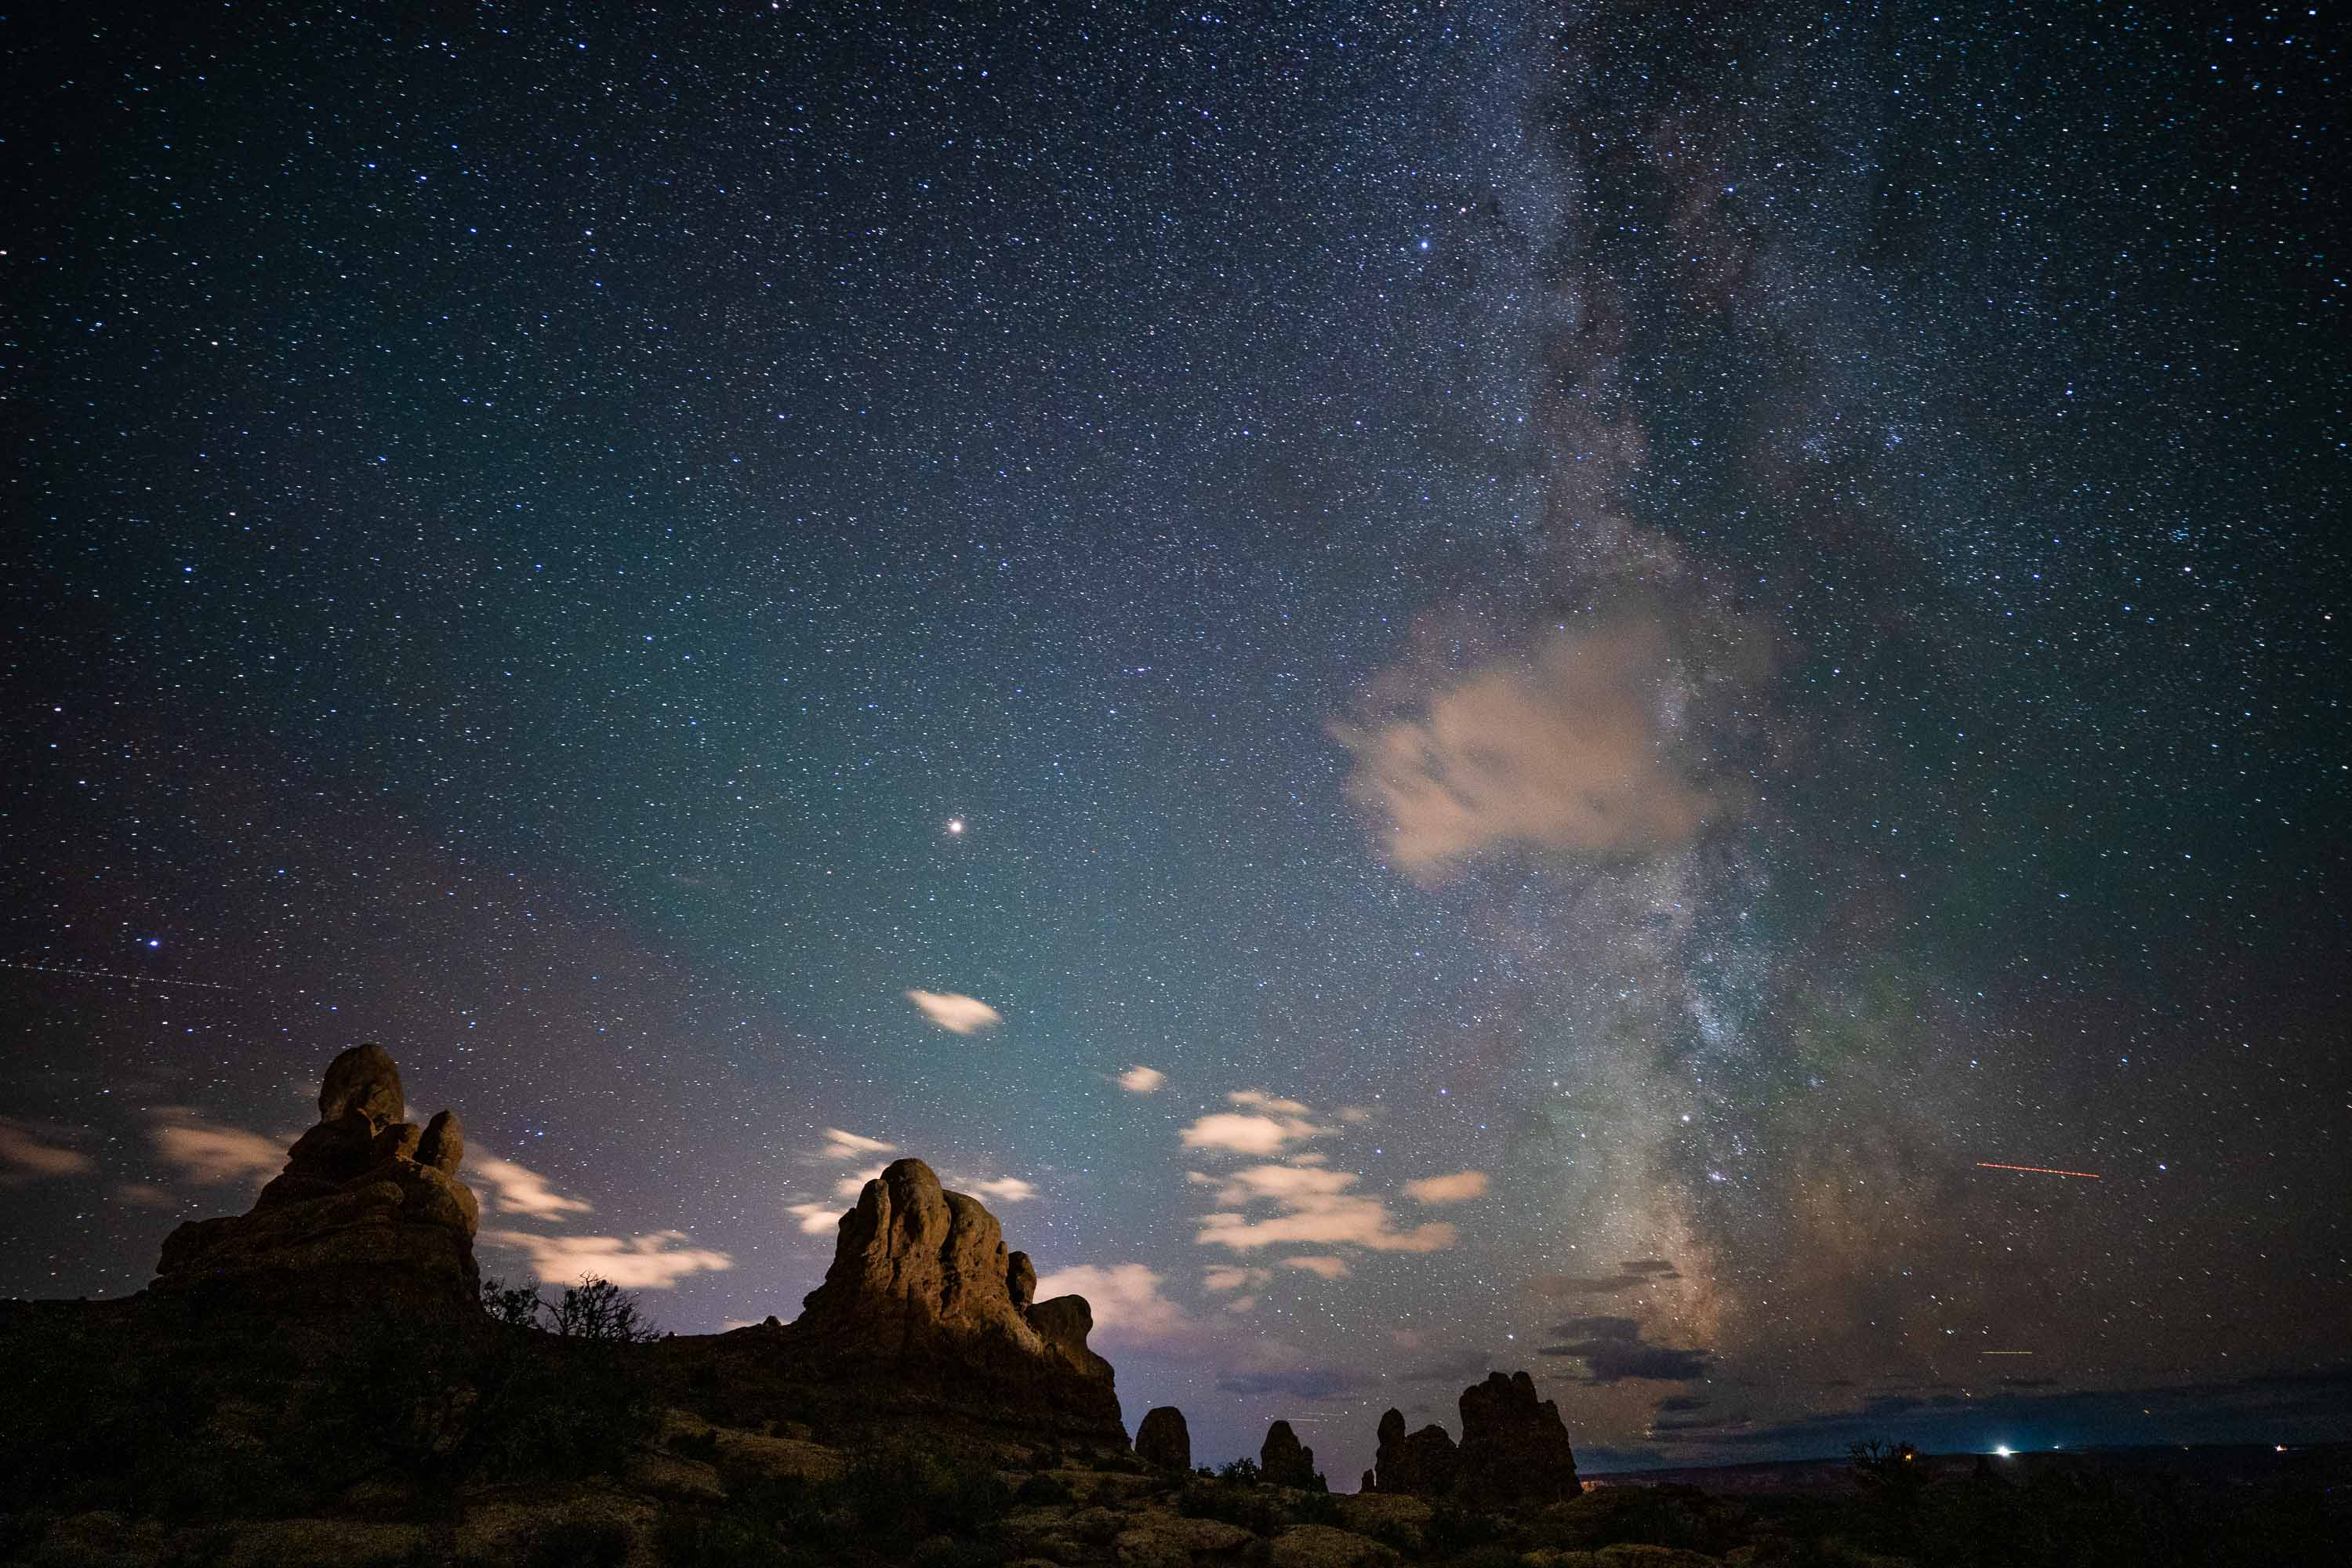 Arches National Park Milky Way - Sony a7III